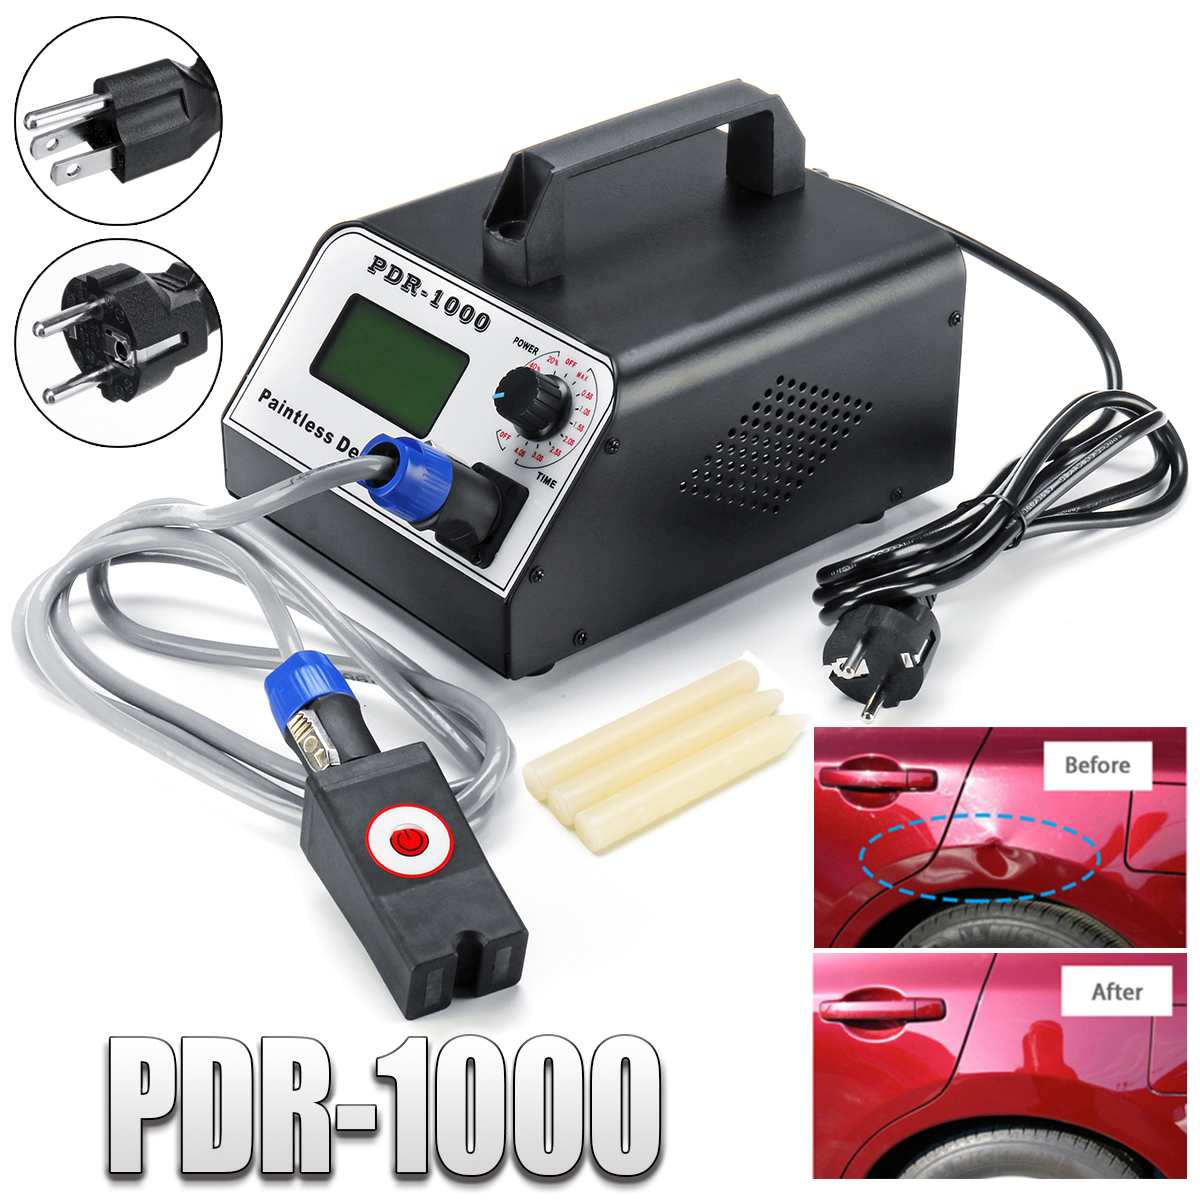 Induction Heater Car Paintless Dent Repair Remover for Removing Dents 220V/110V 1000W Hot Box Tool Set for Car Body Repair